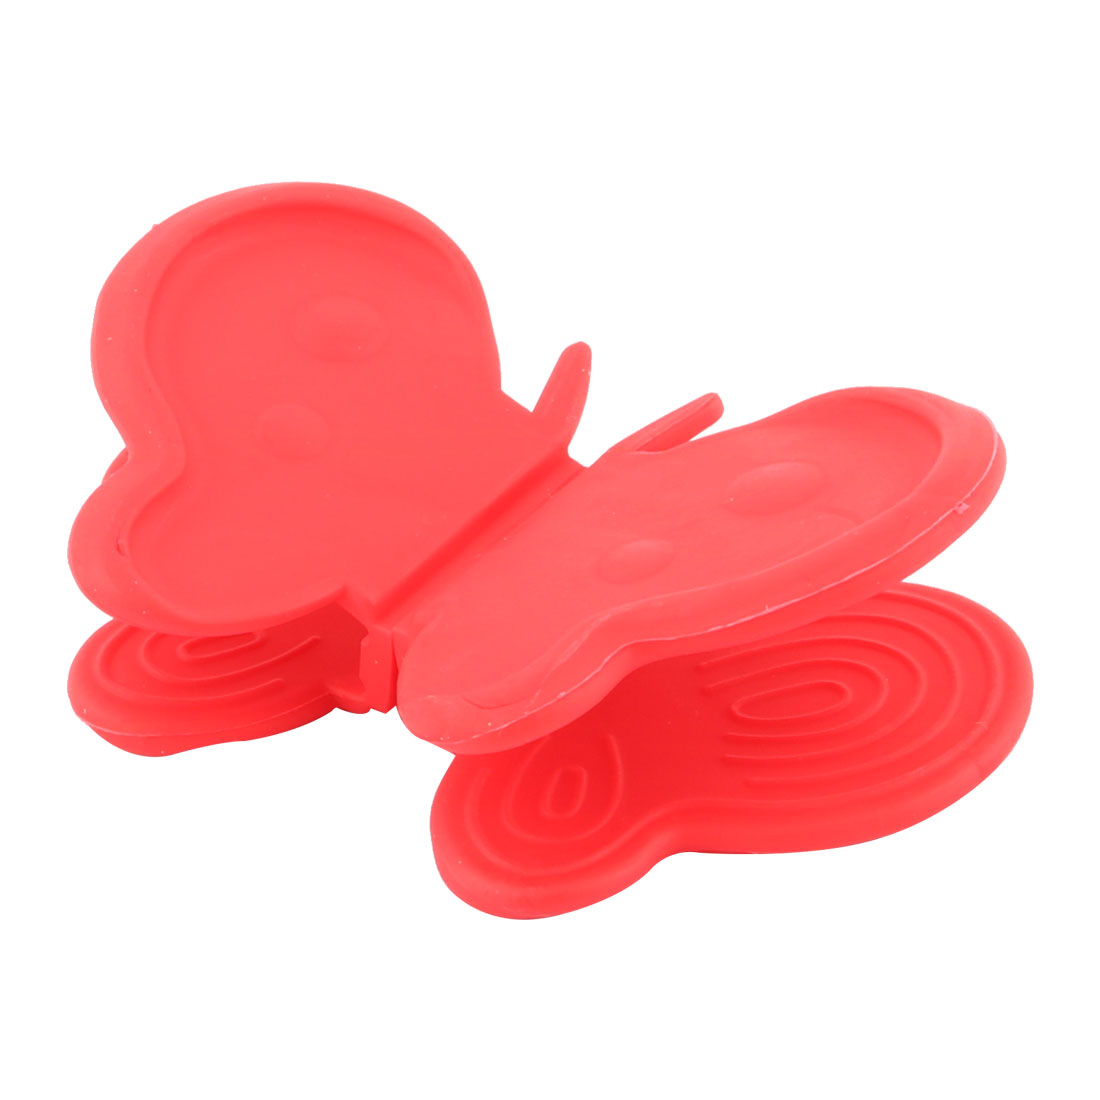 Butterfly Design Rubber Cooking Hot Bowl Plate Dish Carrier Holder Claw Clip Clamp 2pcs Red